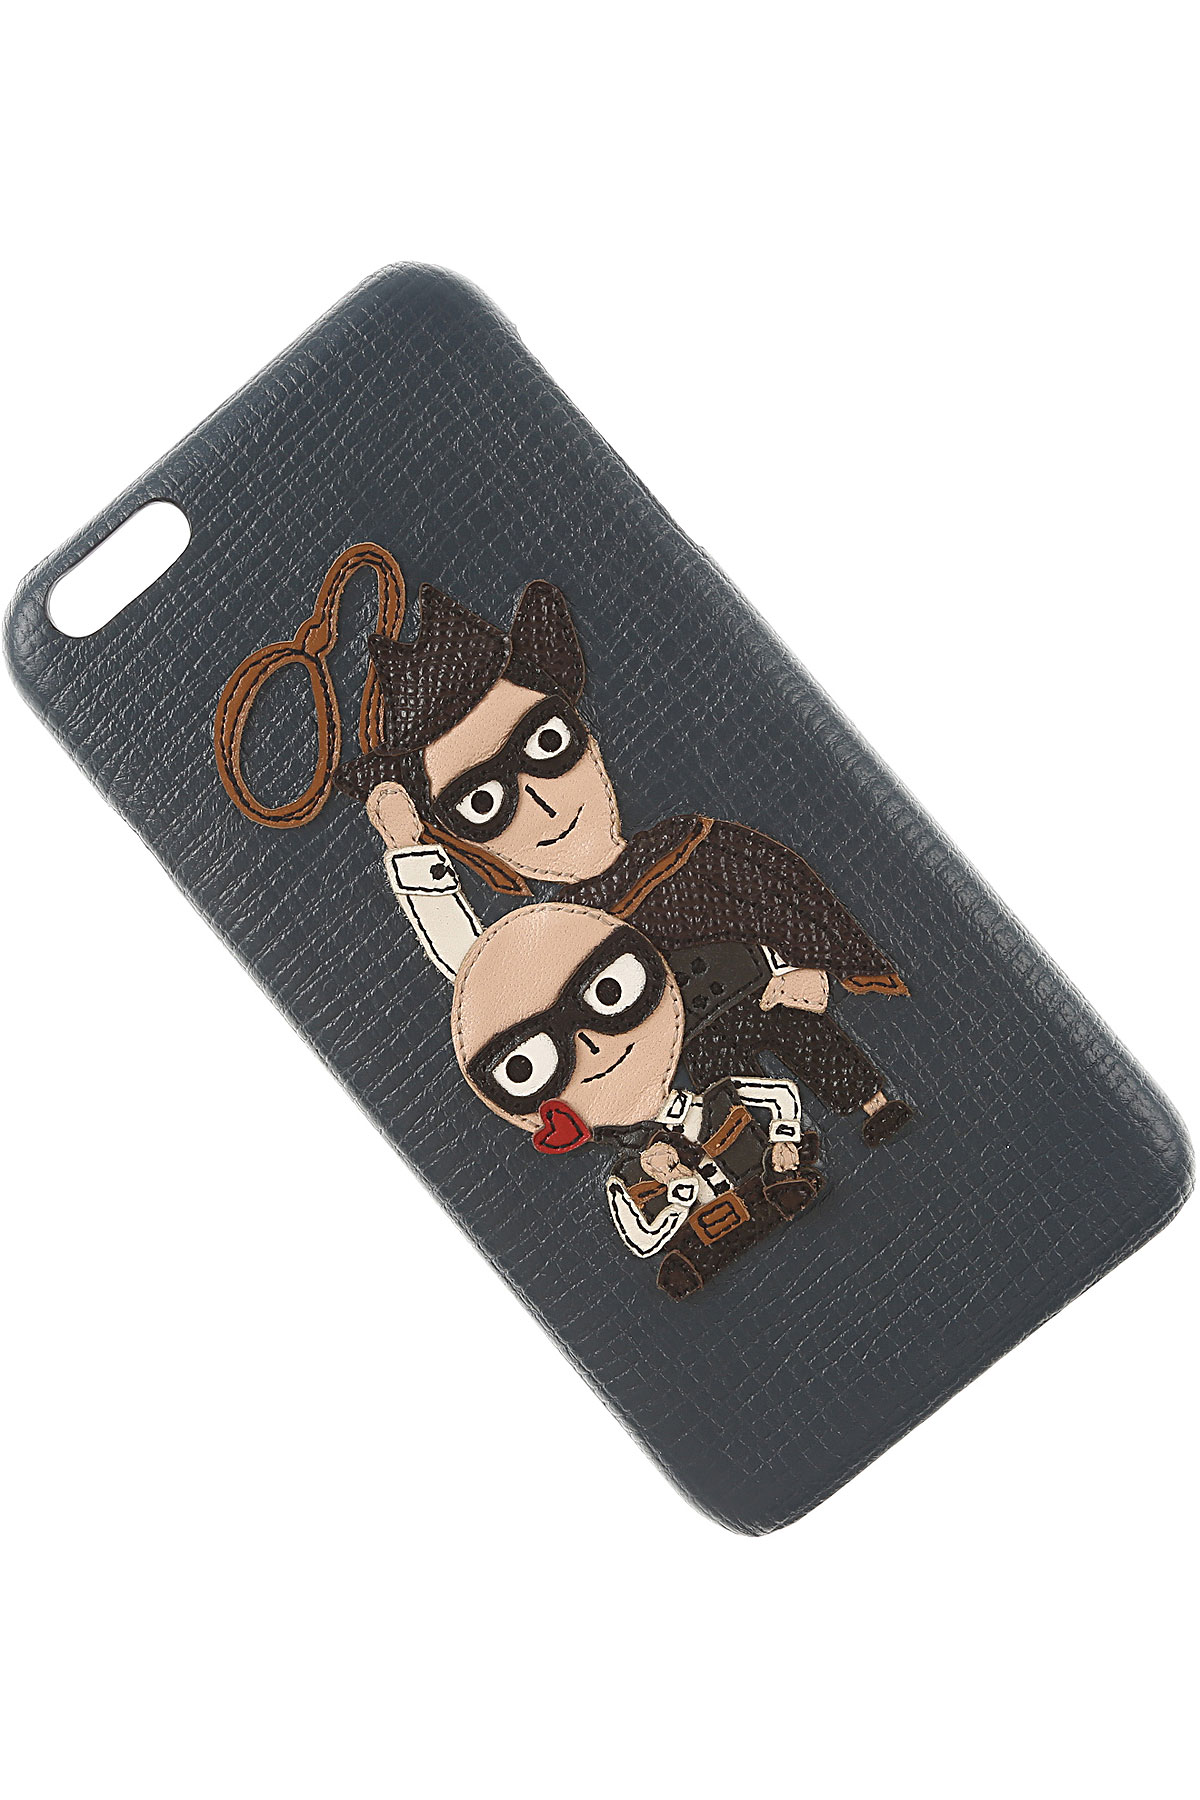 Image of Dolce & Gabbana iPhone Cases On Sale in Outlet, Iphone 6 Plus Case, Blue Navy, Leather, 2017